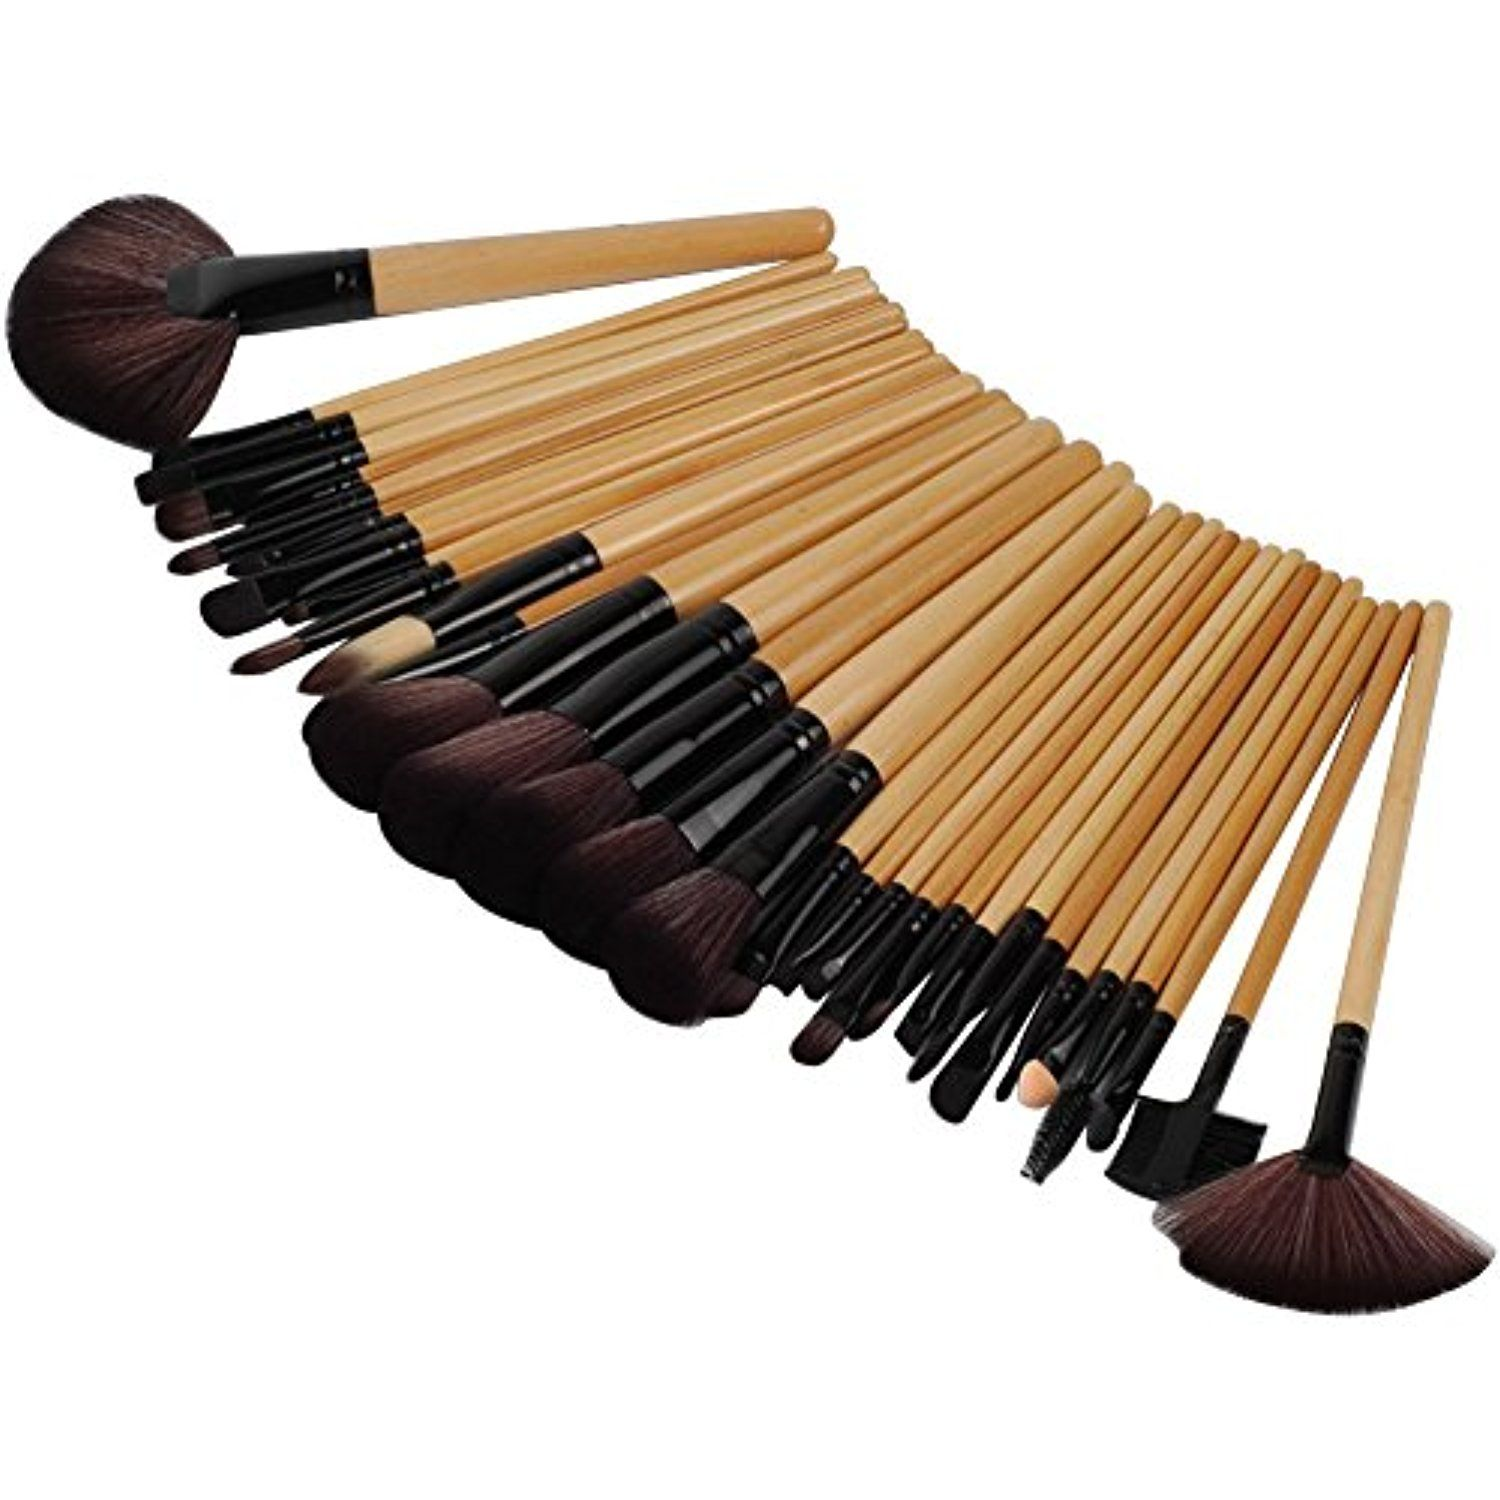 CN CHIC 32Pcs Wood Makeup Brushes Professional Cosmetic